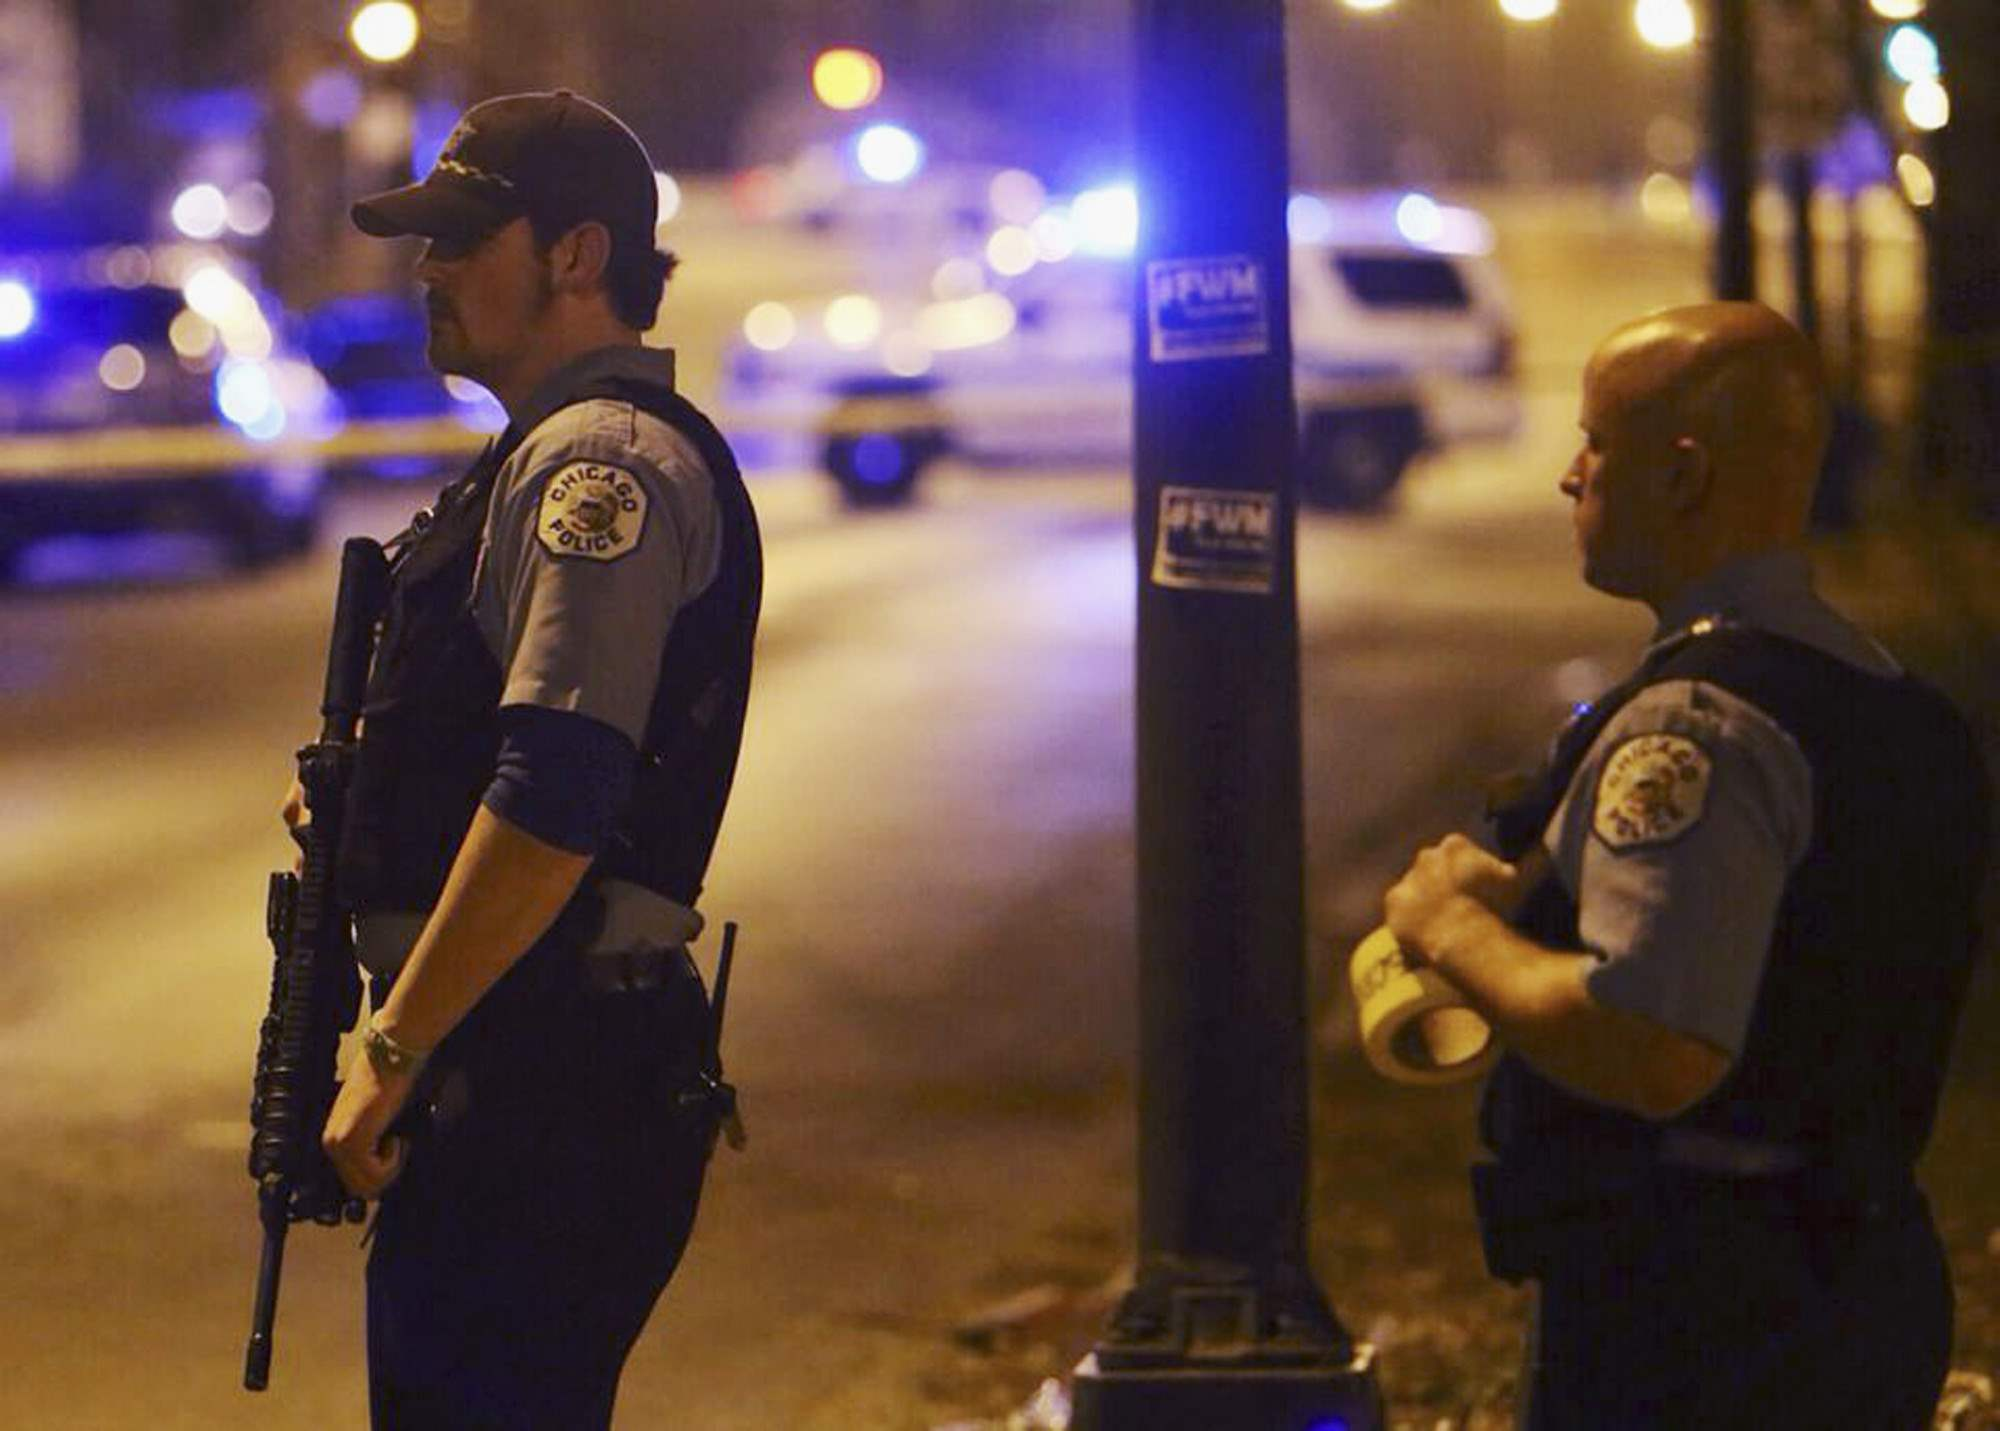 In this Sunday, April 20, 2014 photo, Chicago police stand guard at the scene where five children, all 15 years old or younger, were shot and wounded in Chicago. Police said Monday that eight people were killed and 44 injured, including the five children, in weekend shootings. (AP Photo/Sun-Times Media, Brian Jackson) MANDATORY CREDIT, MAGS OUT, NO SALES ** Usable by LA and DC Only **